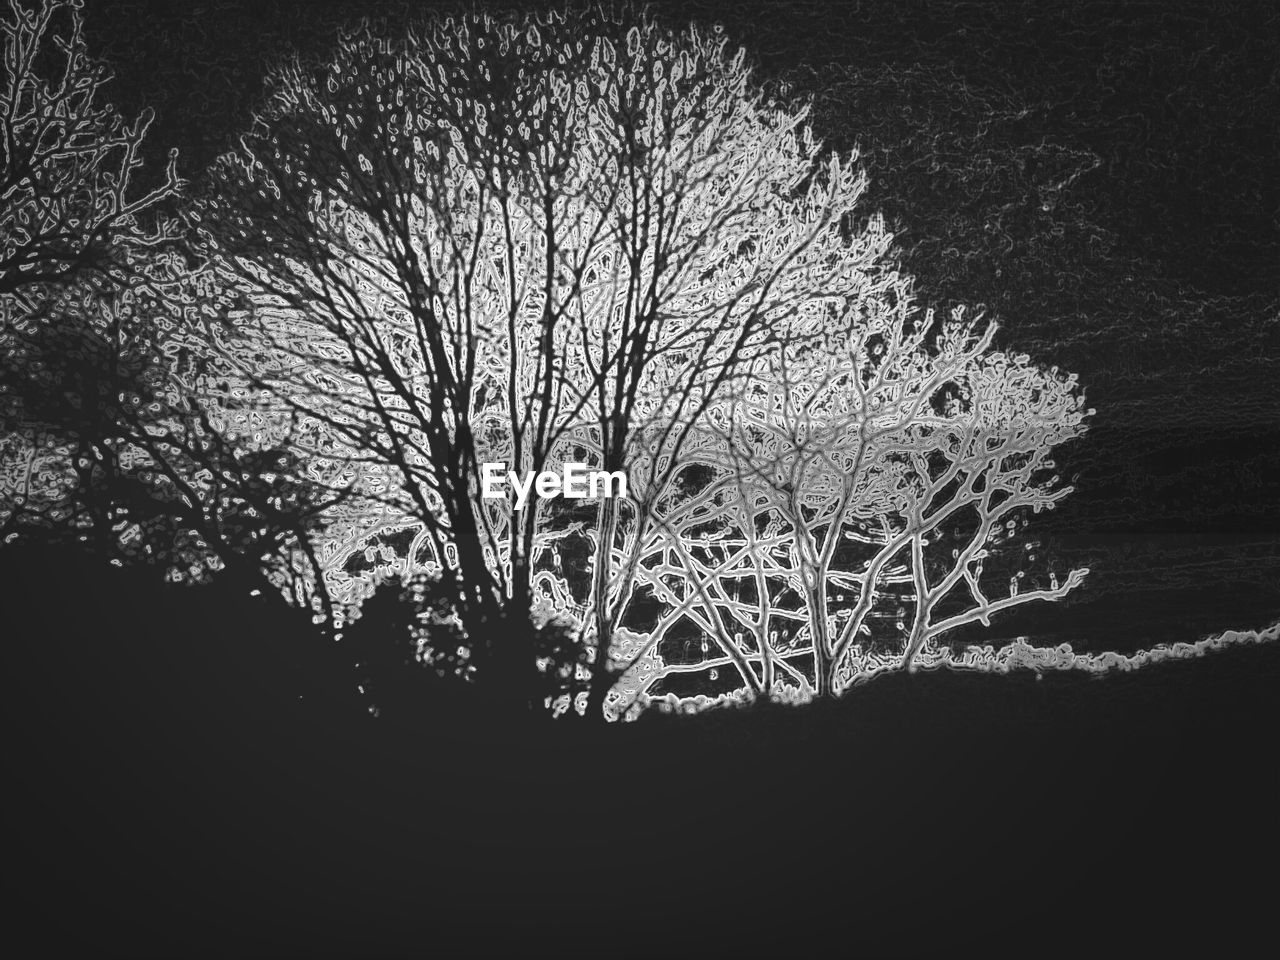 tree, branch, nature, beauty in nature, bare tree, tranquility, outdoors, night, no people, silhouette, landscape, lone